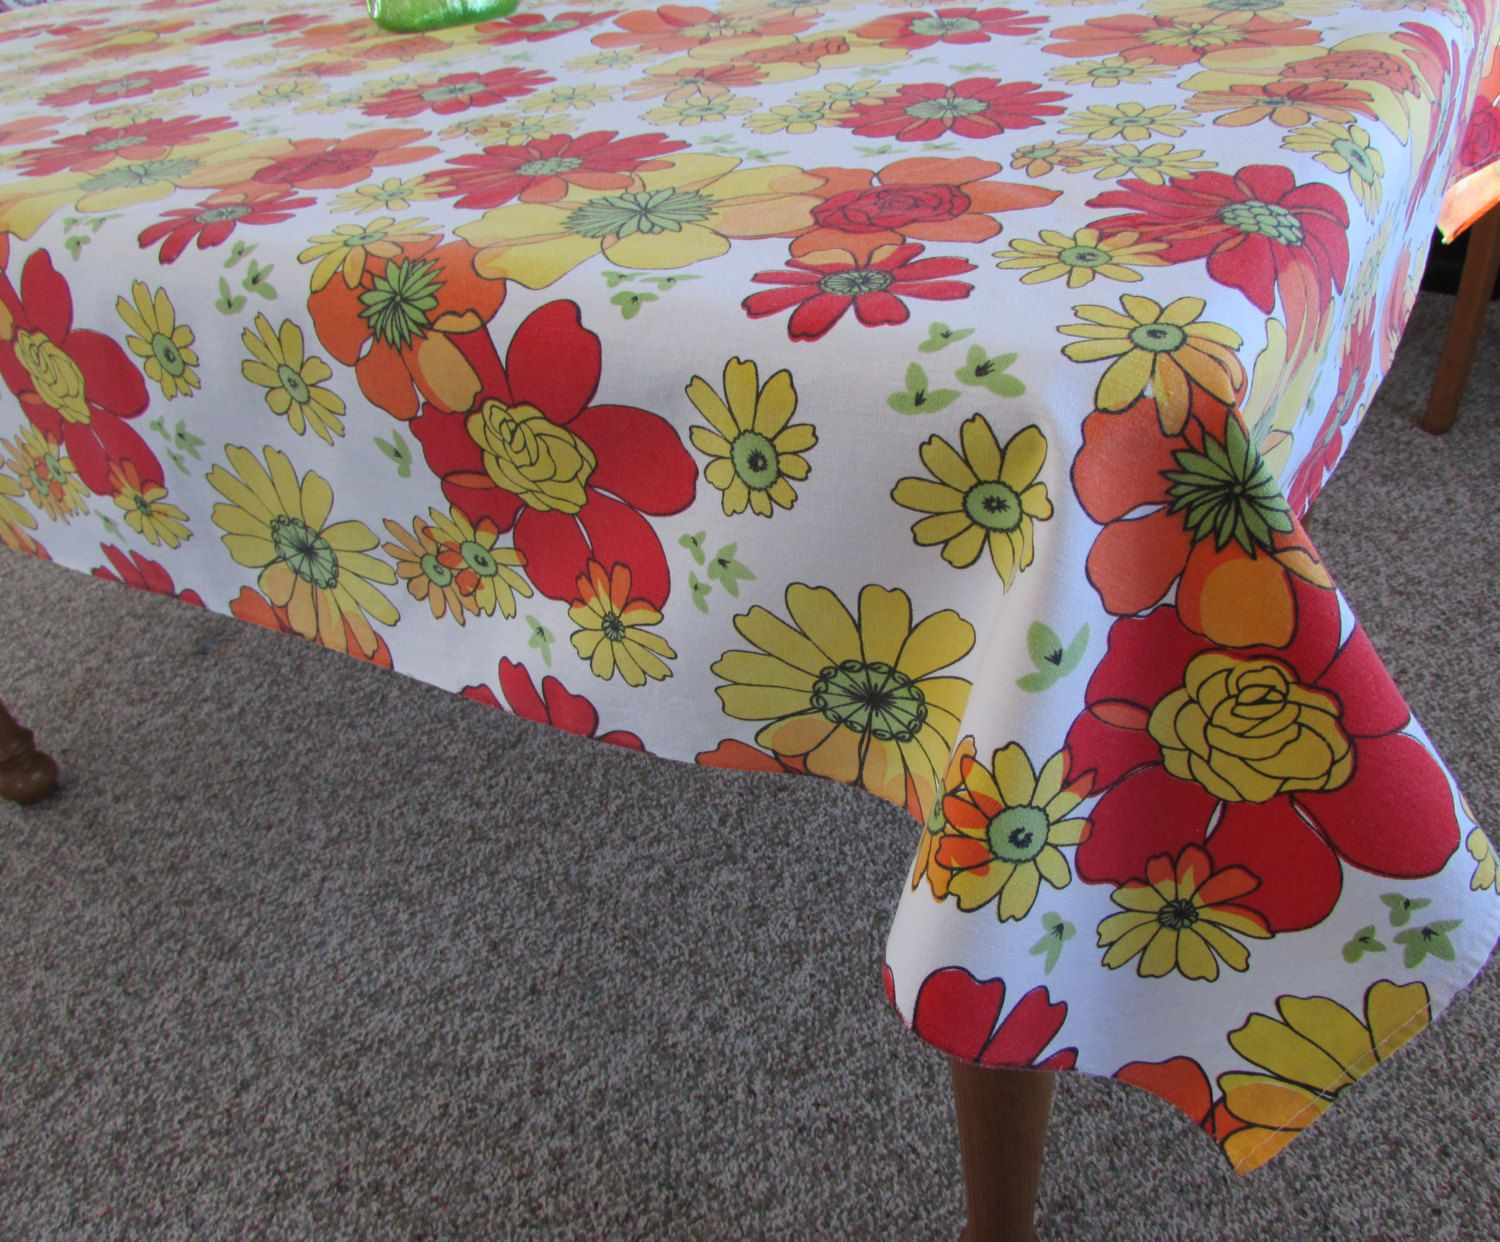 Large Vintage 70s Floral Tablecloth   Red, Yellow And Orange Flowers    Cotton Tablecloth